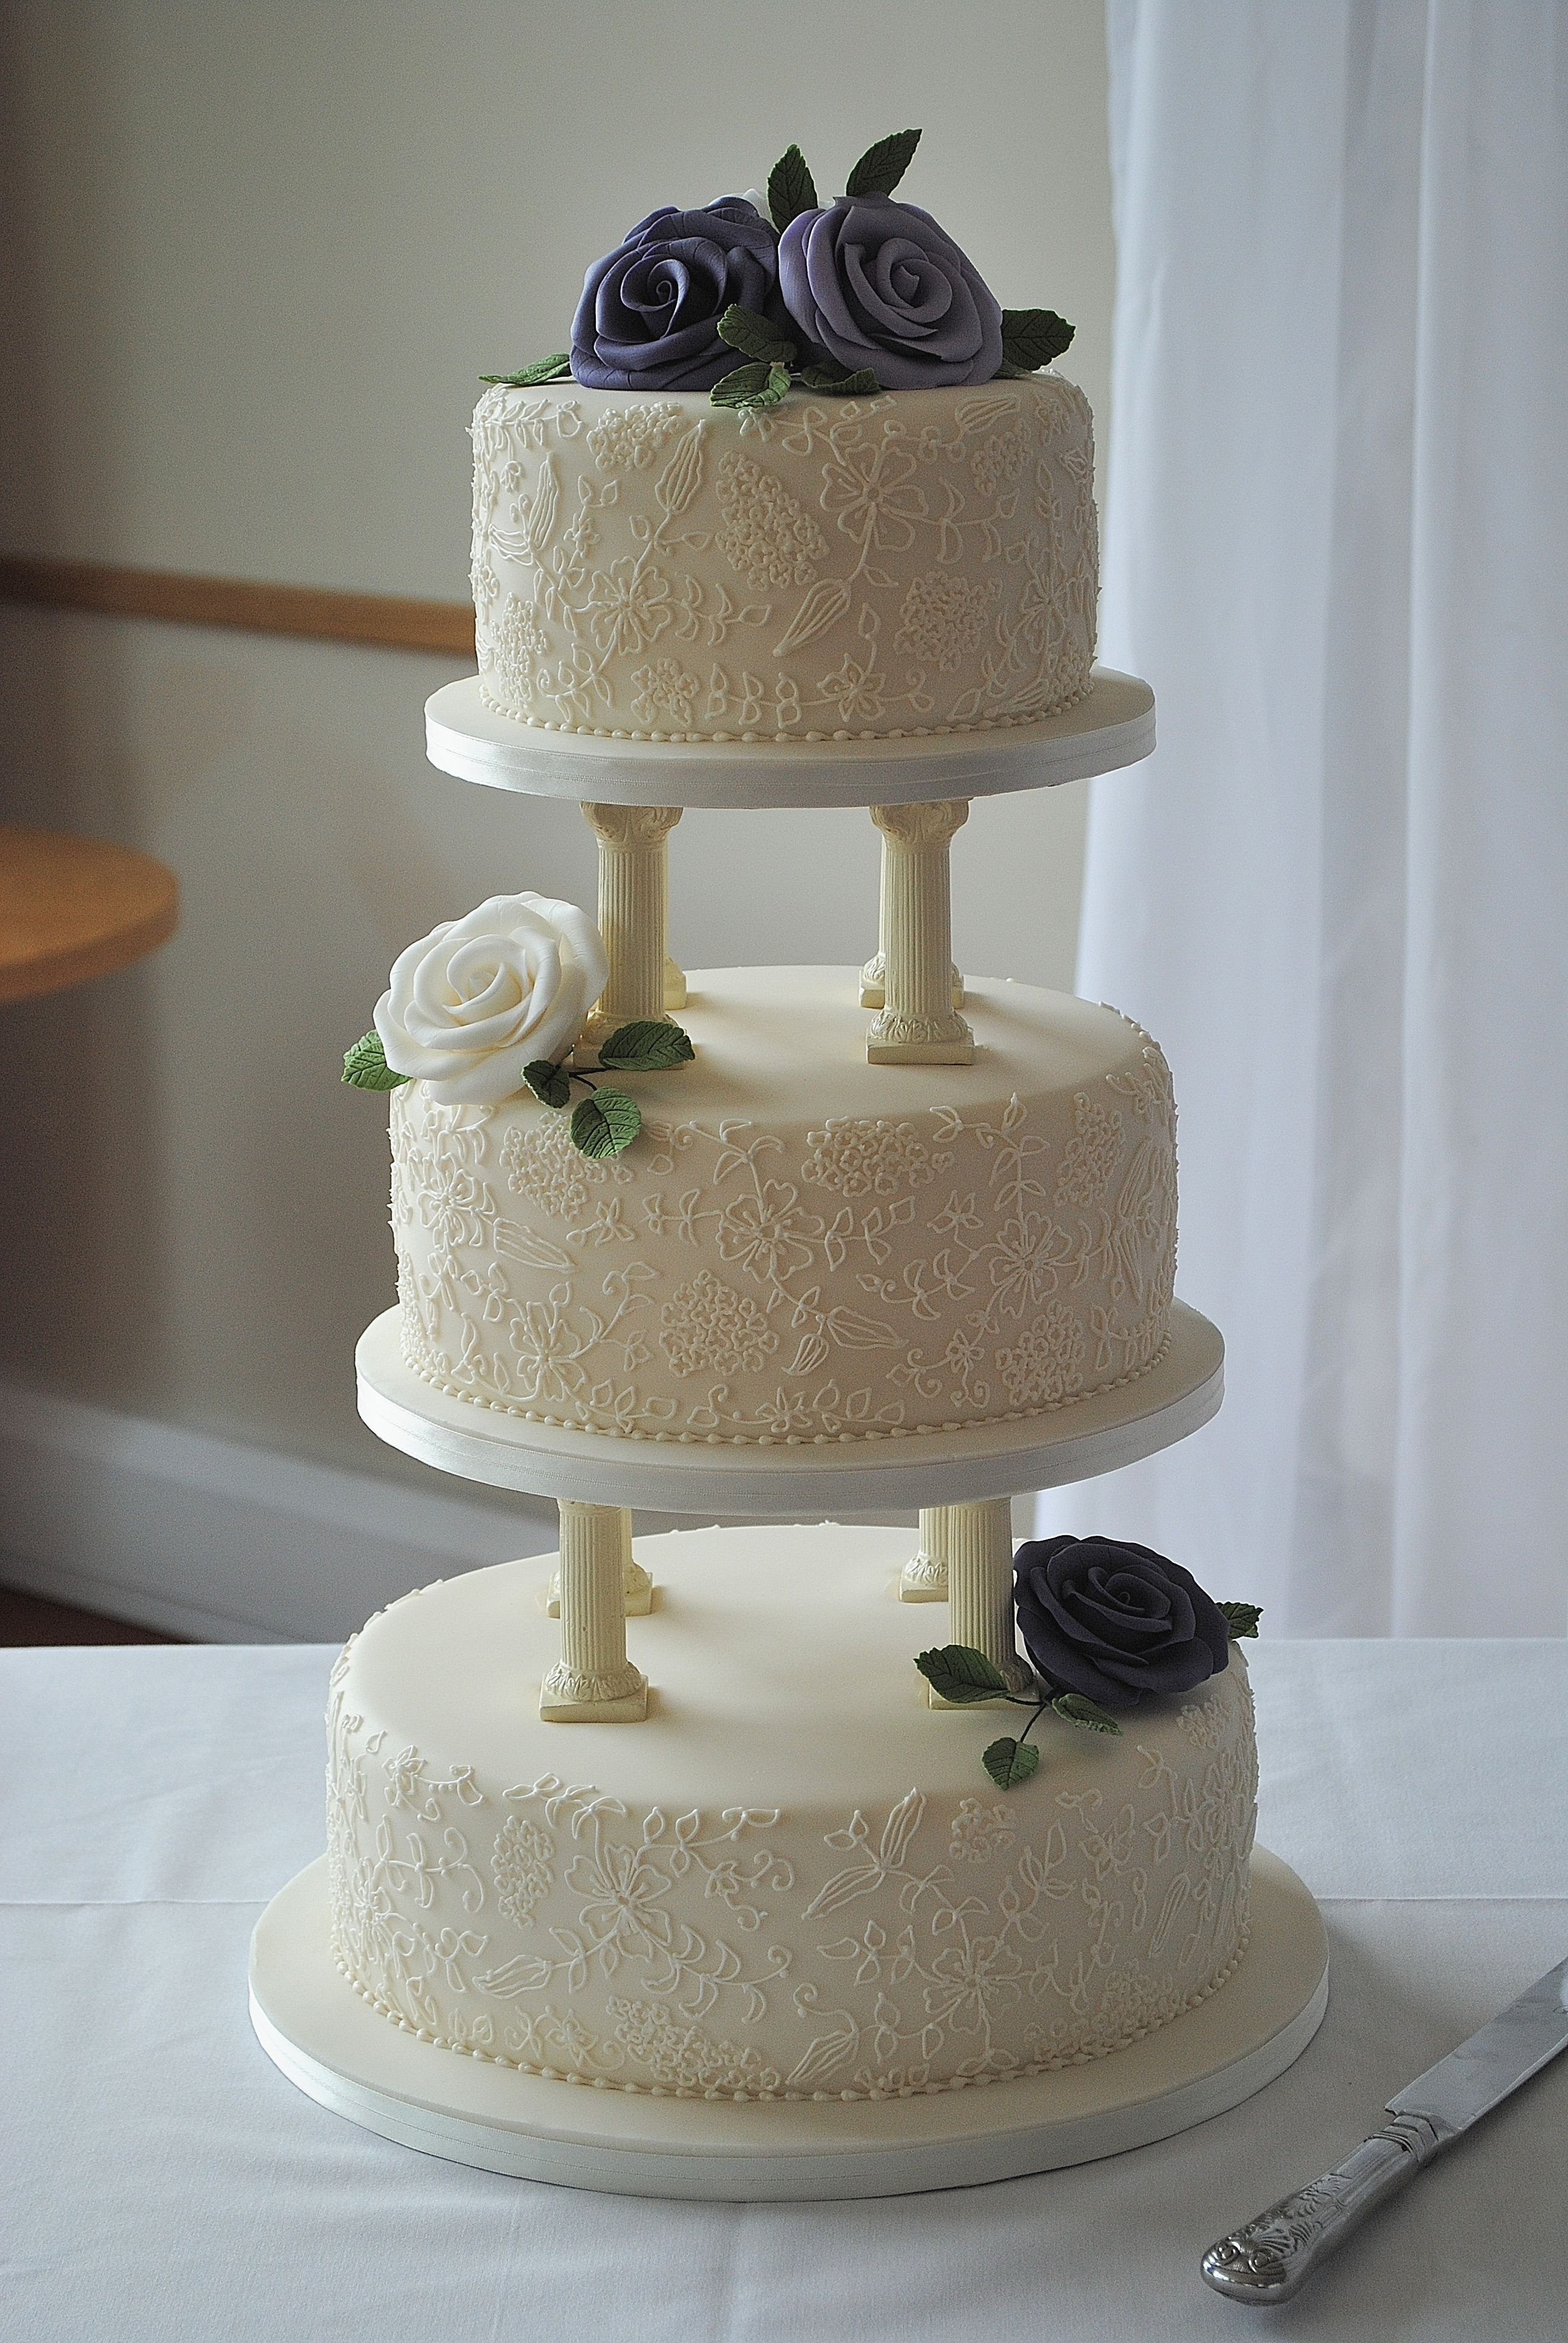 3 tier wedding cake with pillars hand piped lace and hand